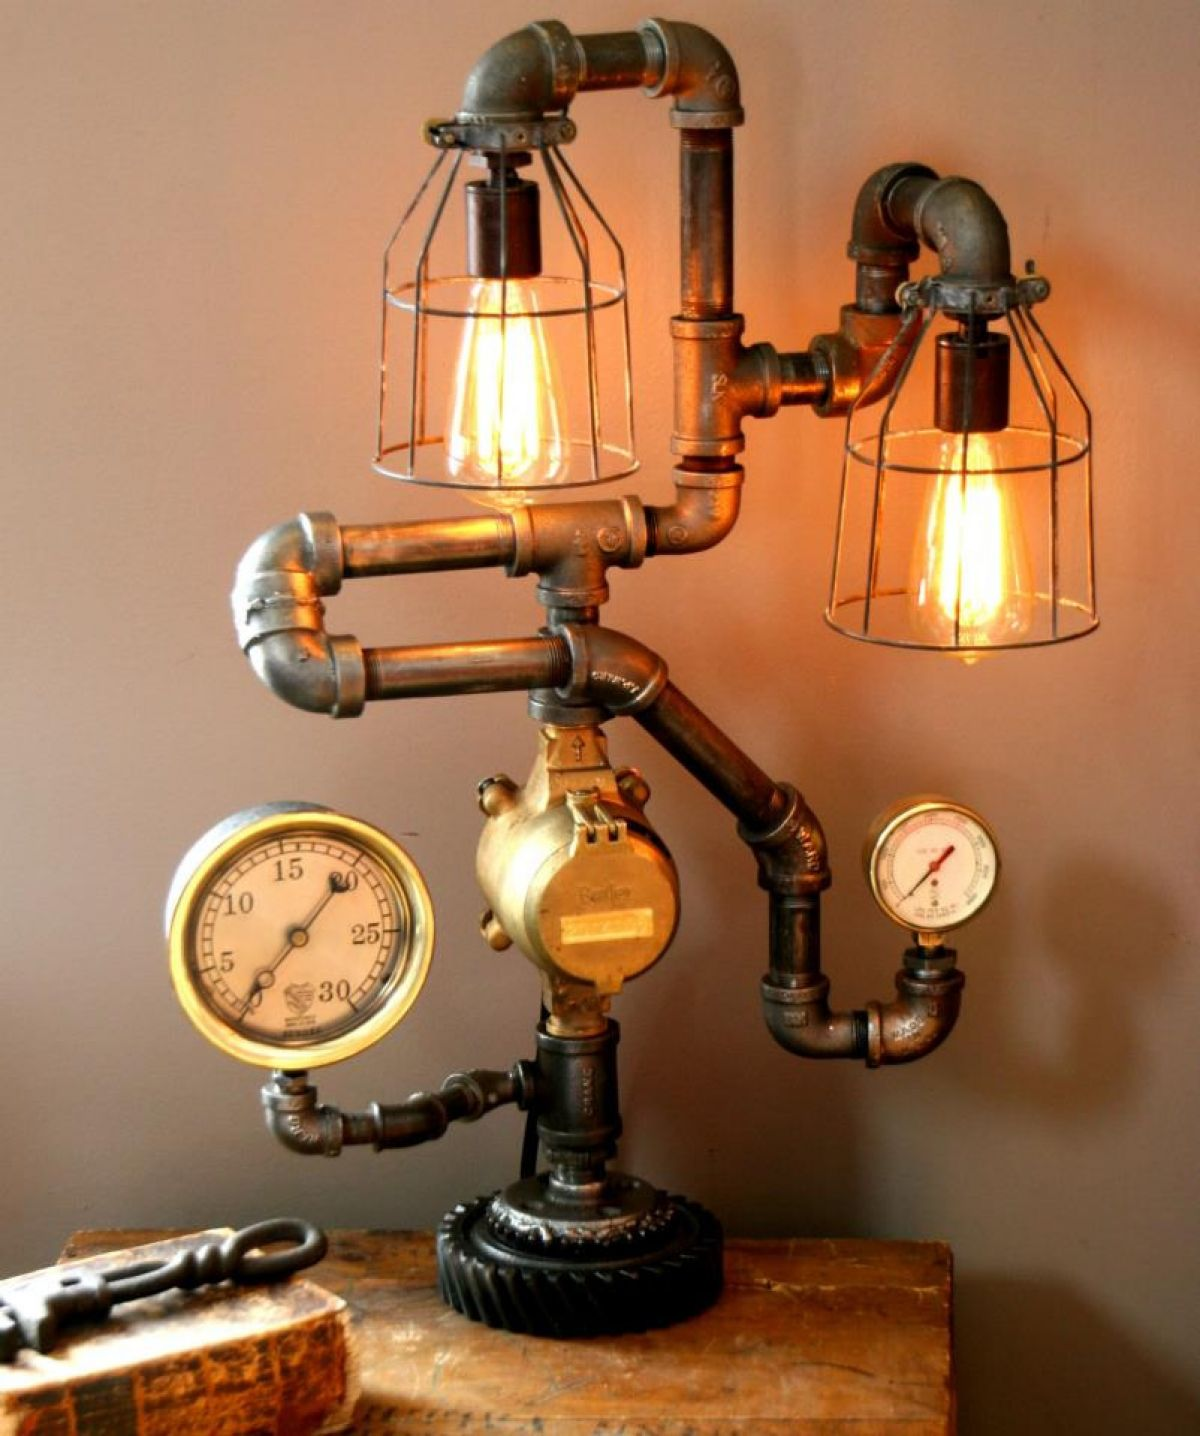 How To Build A Floor Lamp Steampunk Lamps 25 Ways To Add A Touch Of Vintage And